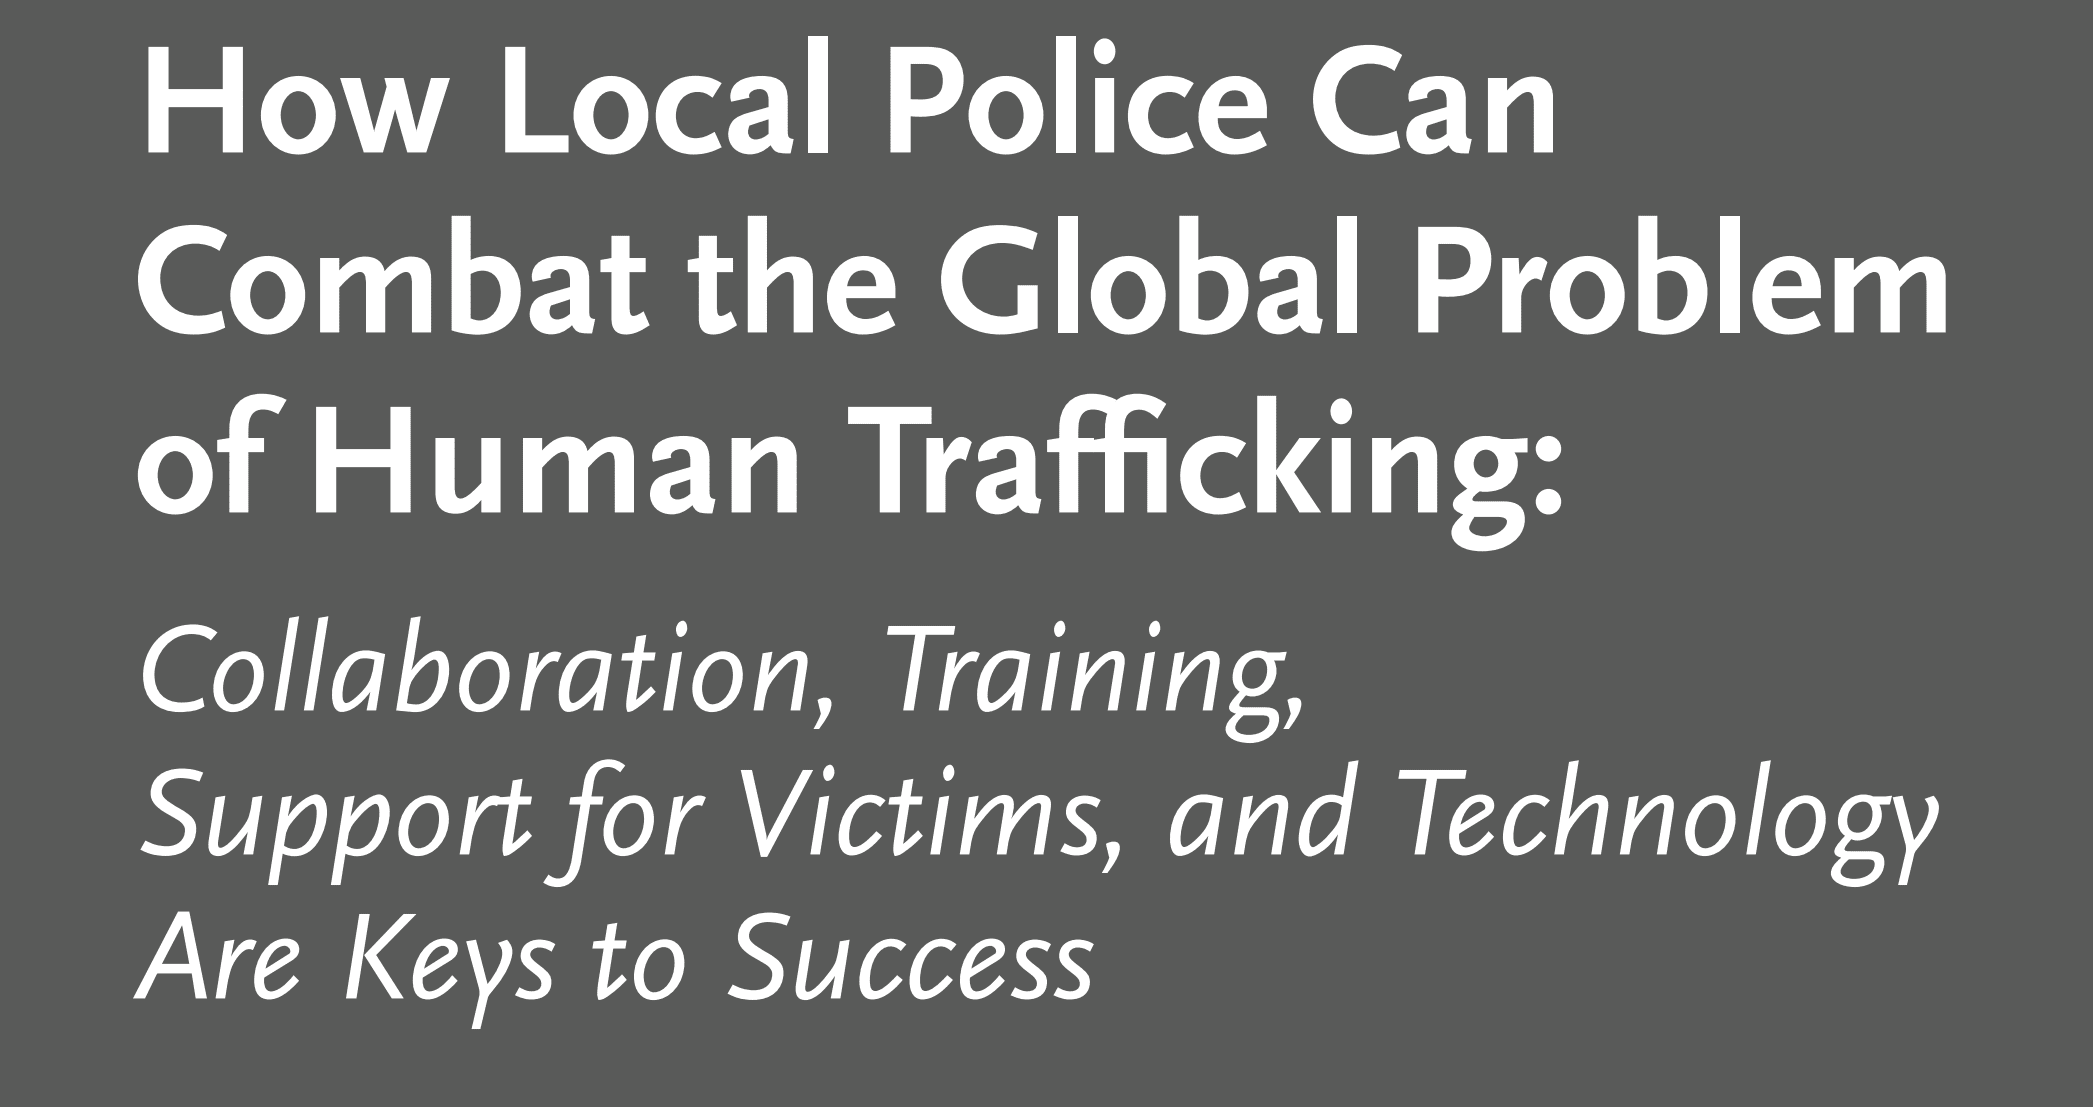 How Local Police Can Combat the Global Problem of Human Trafficking